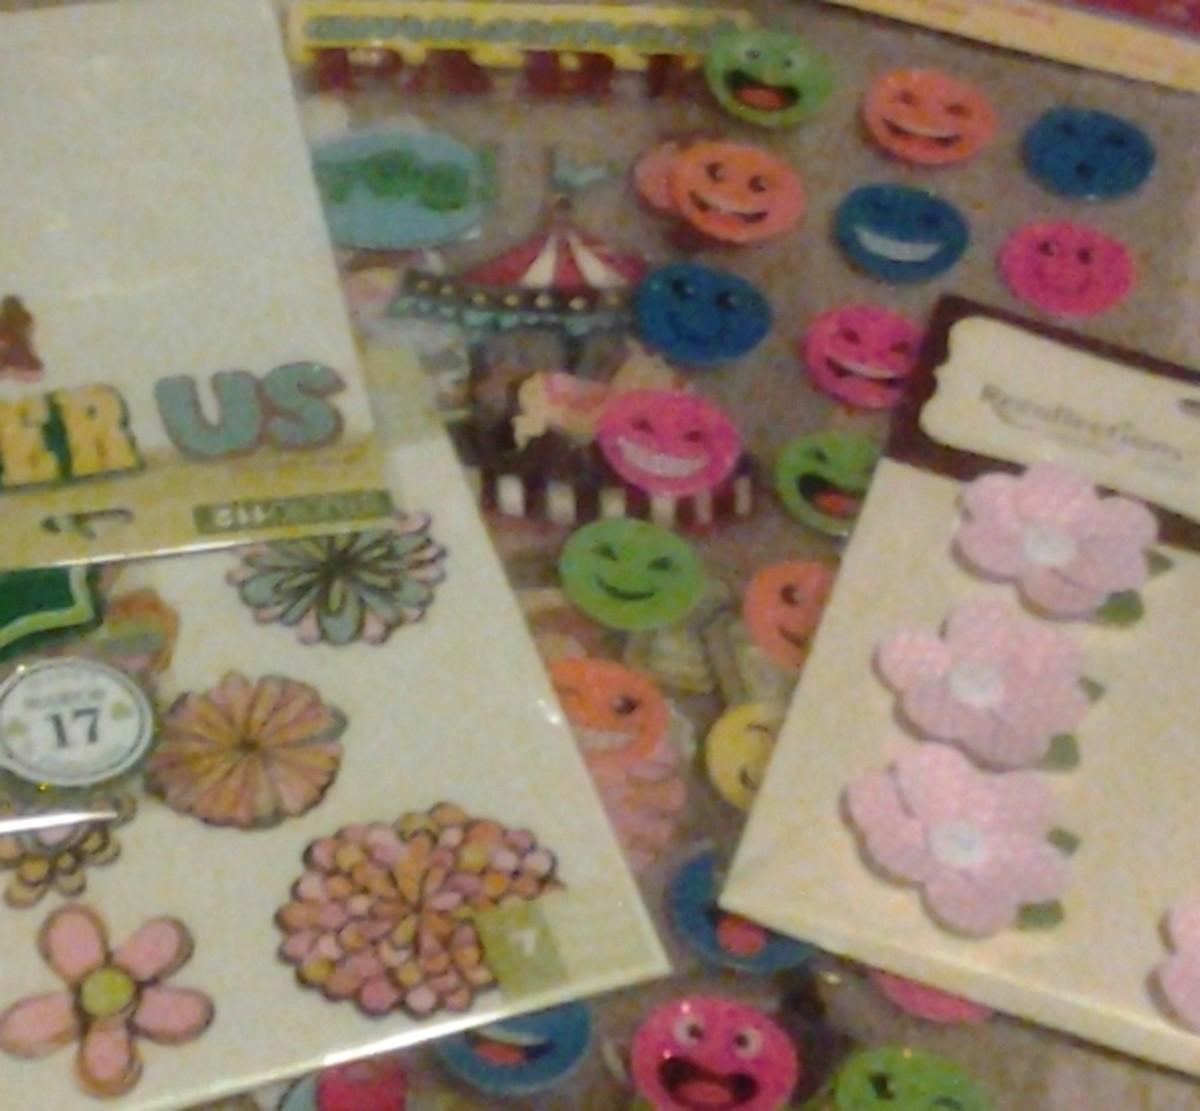 Get tons of cute scrapbook stickers on eBay for a fraction of the in-store cost.